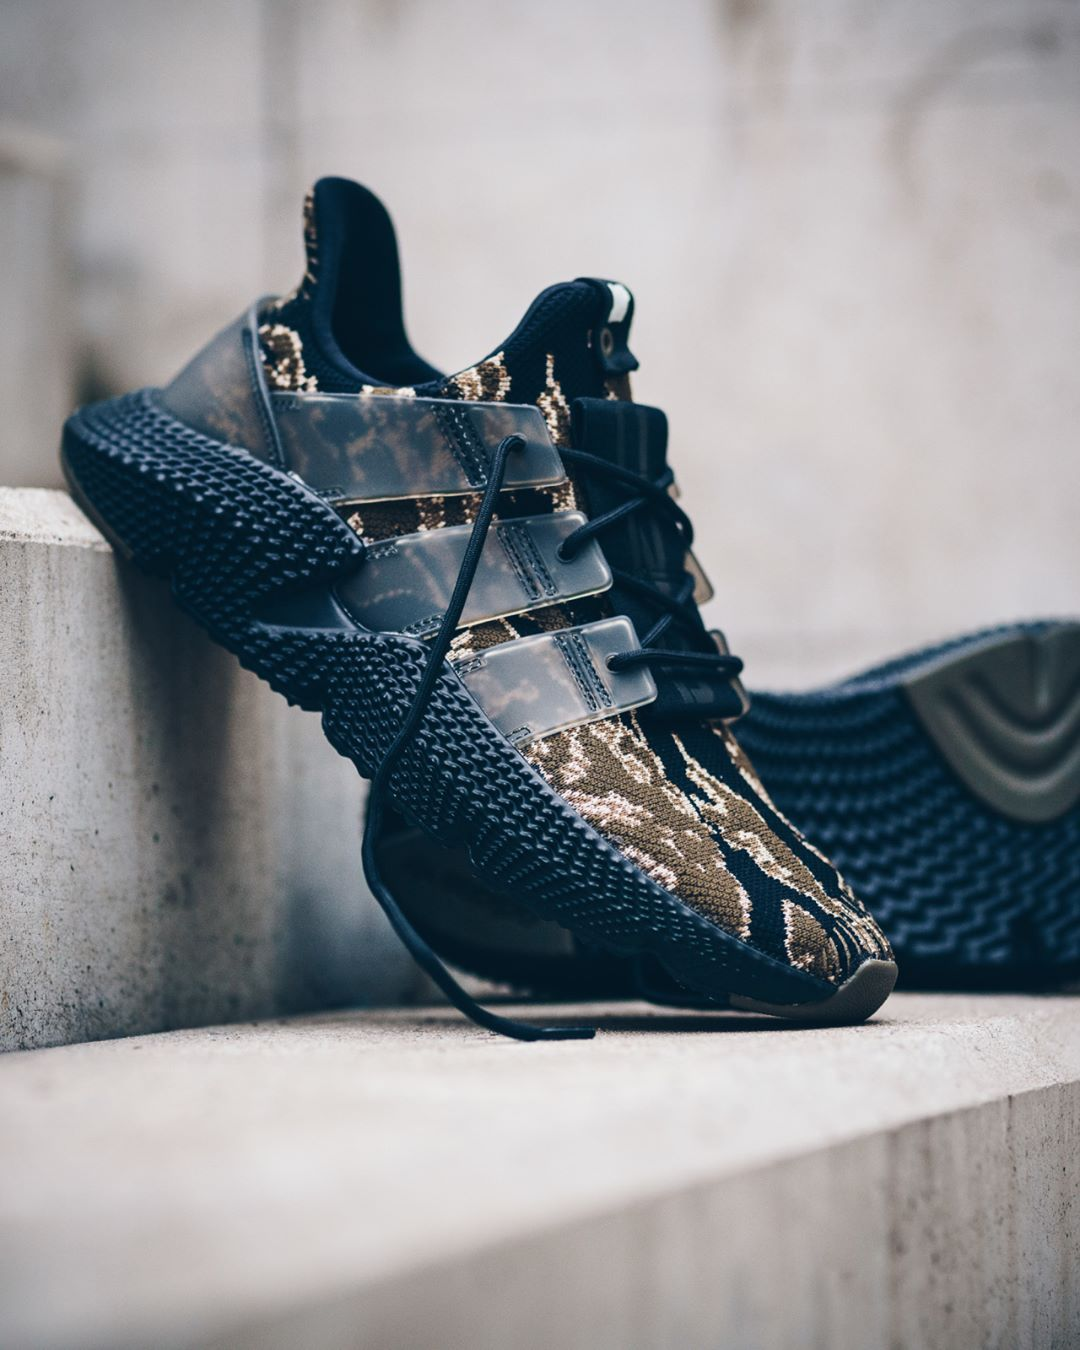 ab58a457442ca3 UNDFTD x Adidas Prophere Camo   Black Credit   Solebox Latest Sneakers